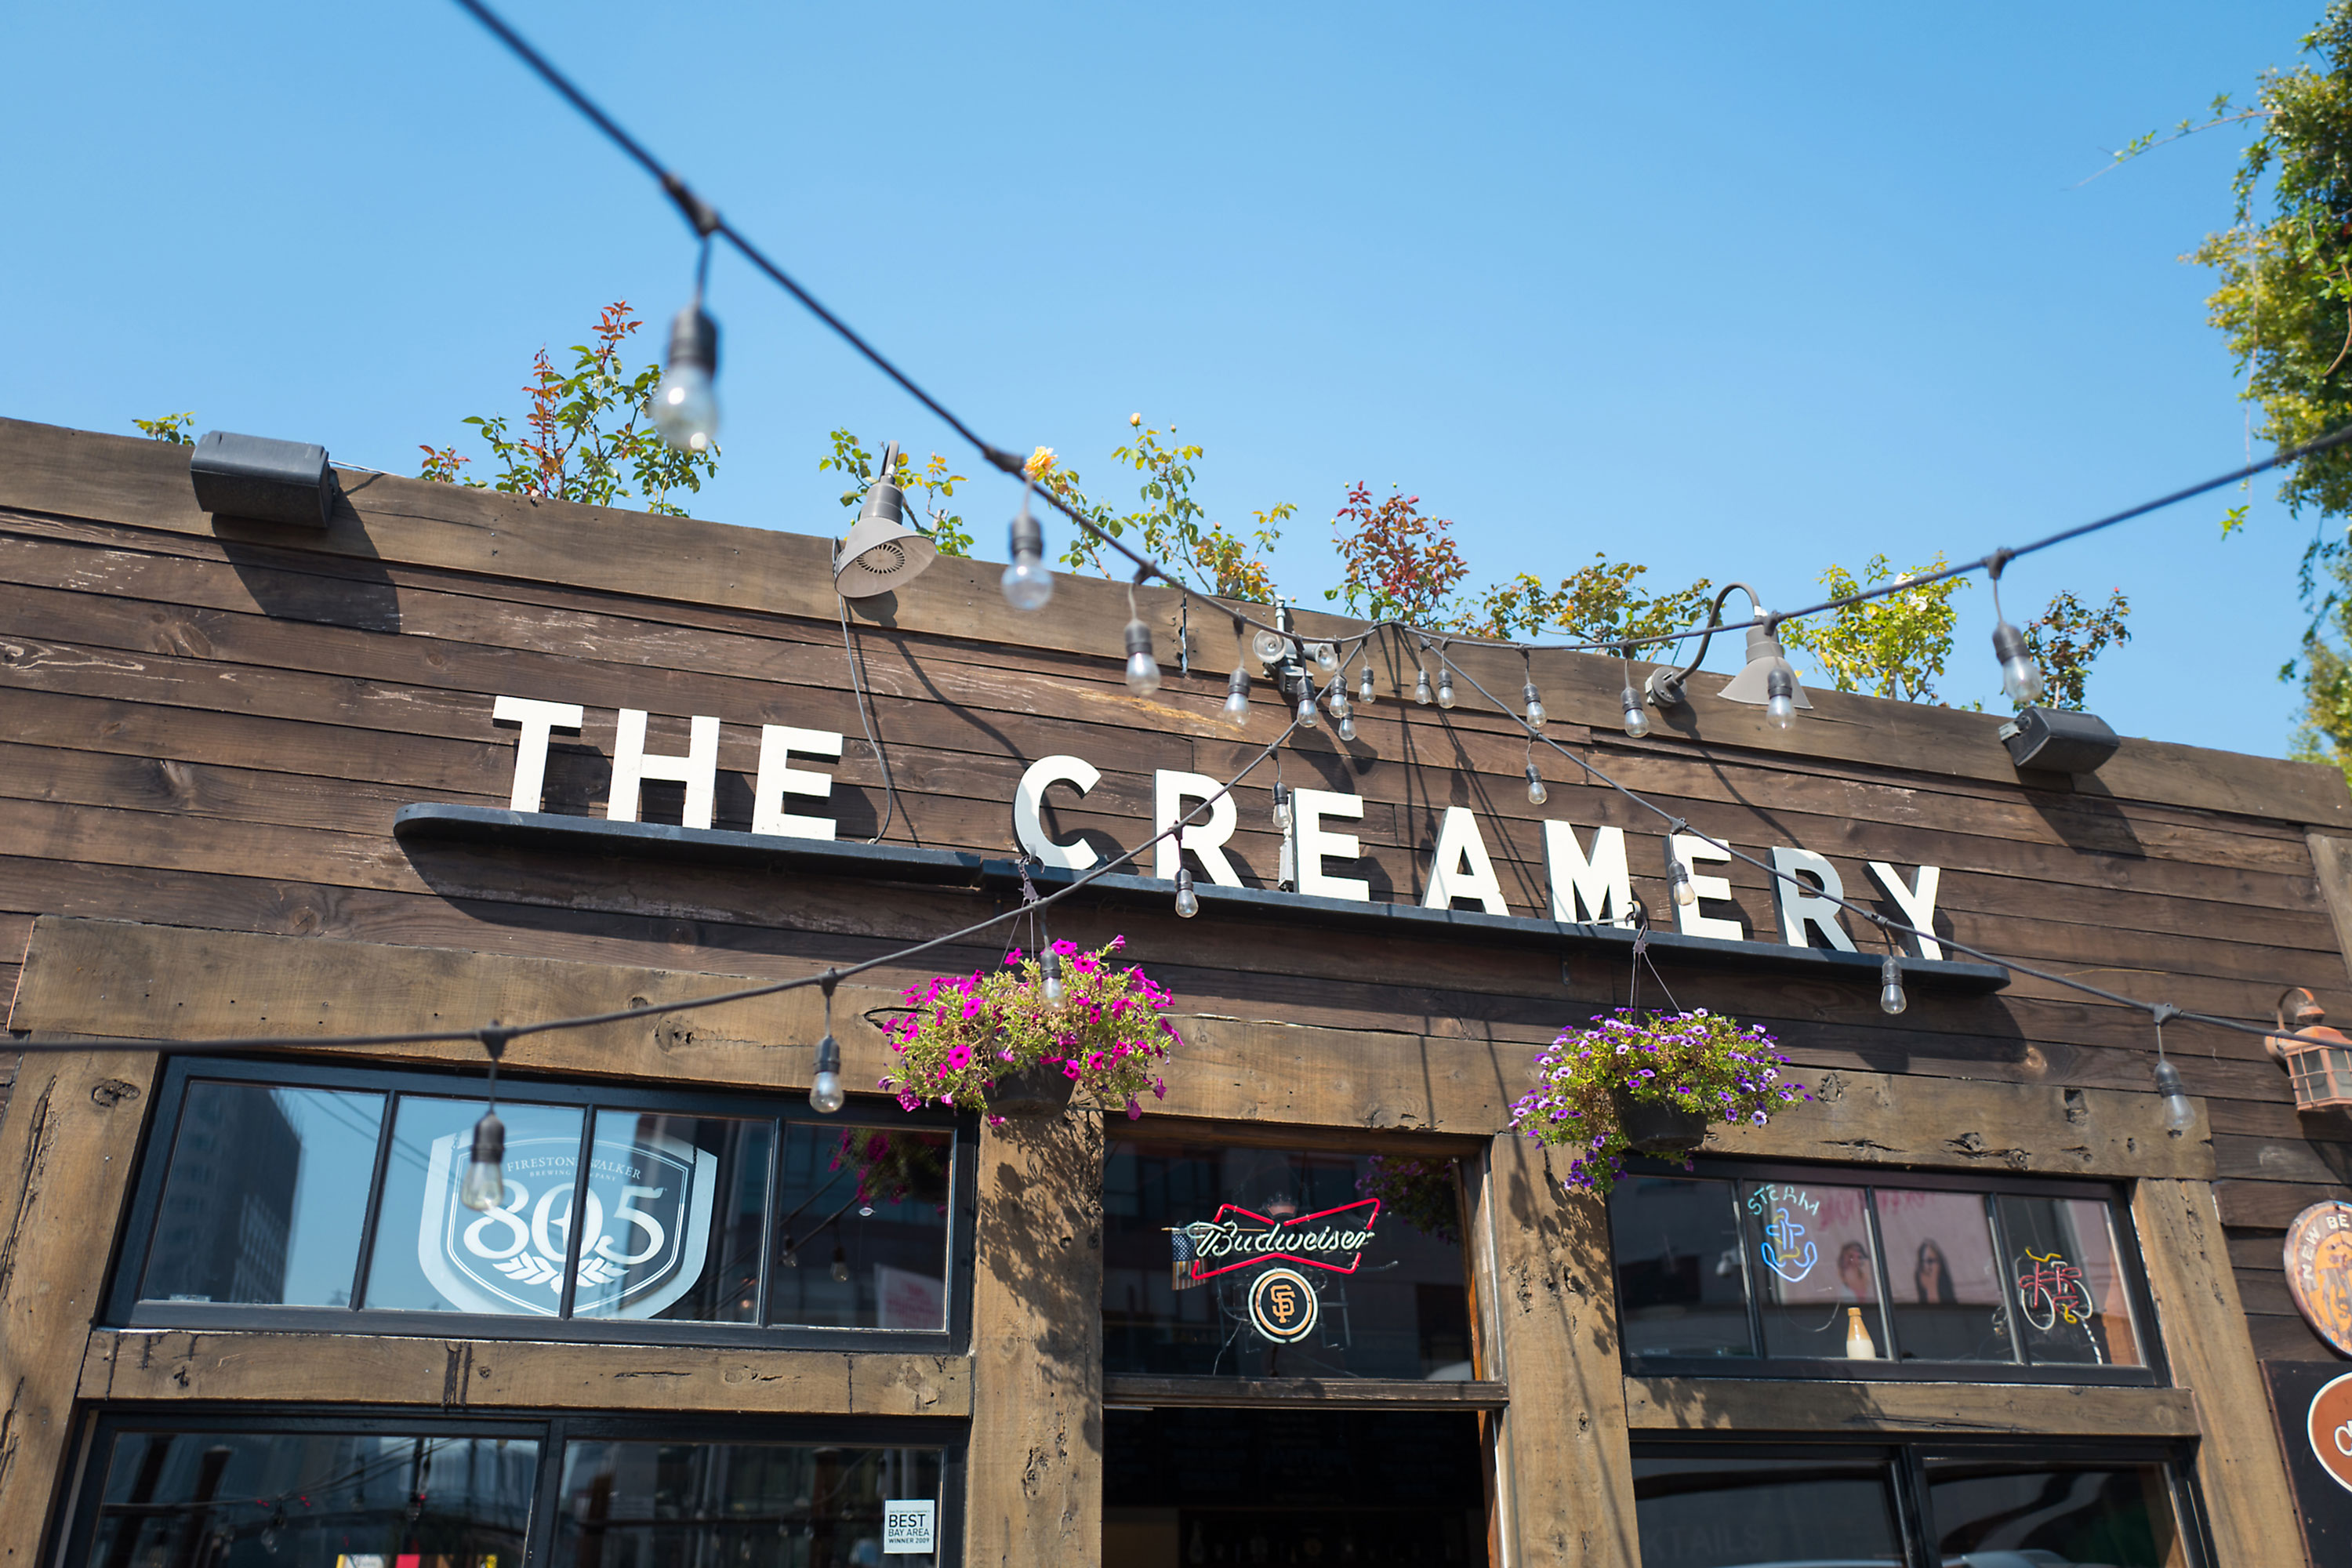 Facade of the Creamery